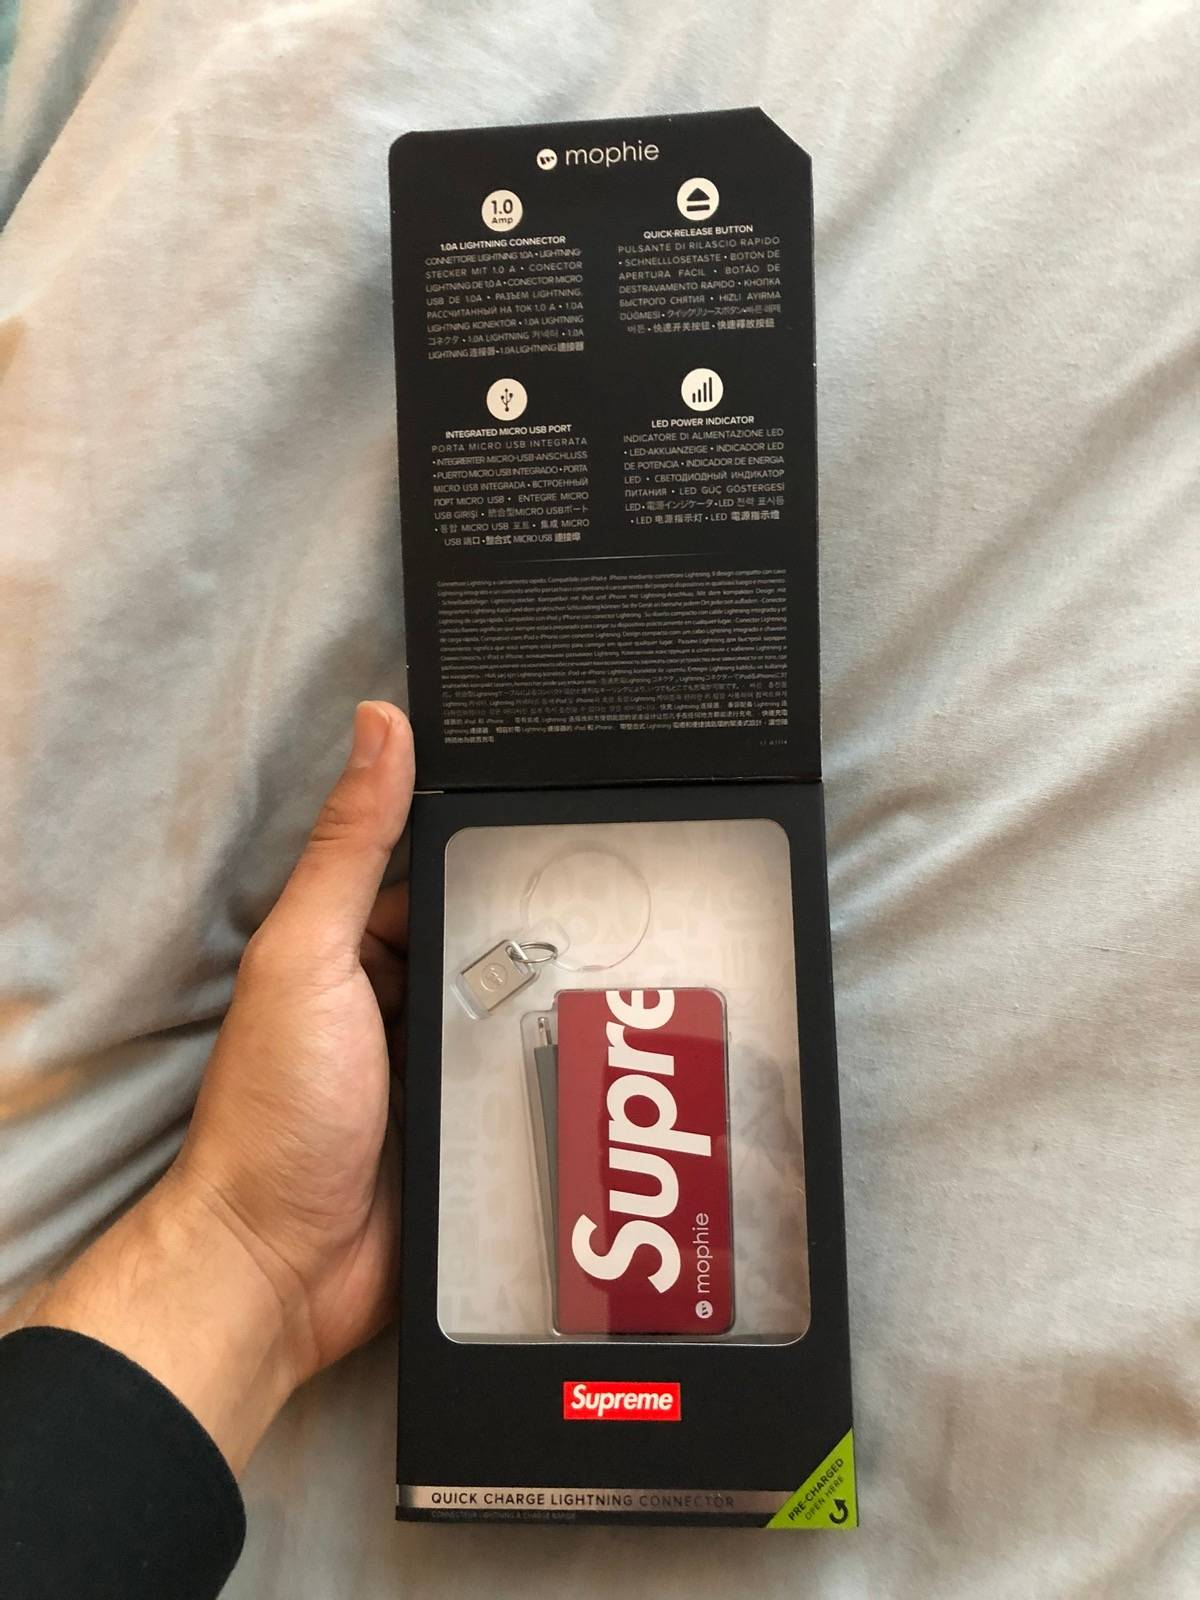 newest 0703e aa320 Mophie × Supreme Supreme Mophie Charger Size One Size $100